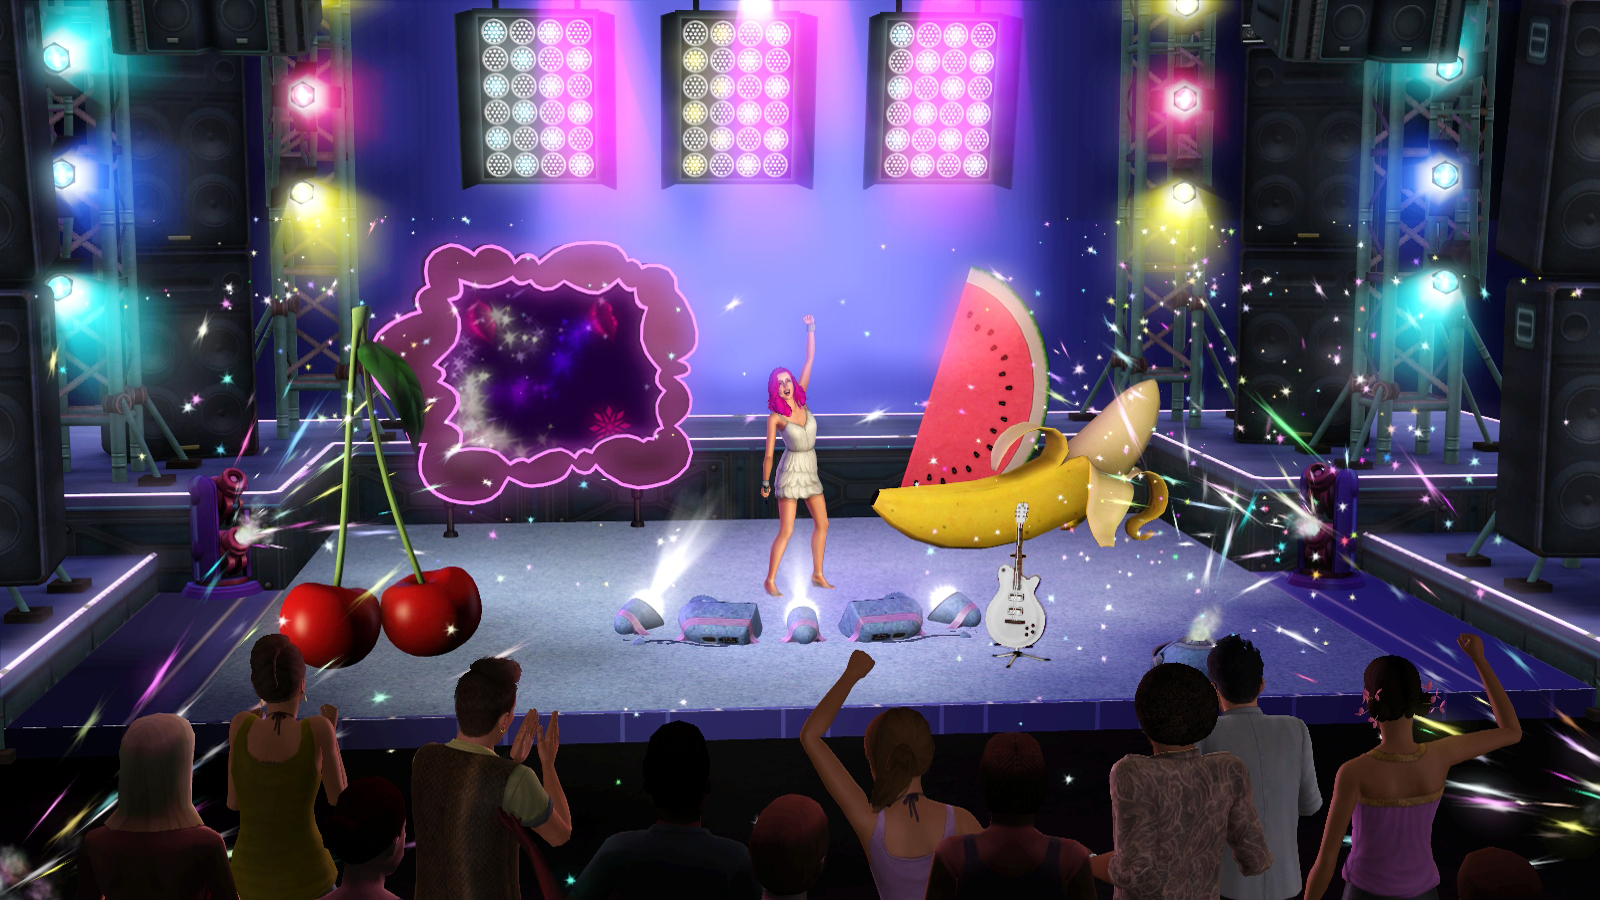 the sims 3 katy perry sweet treats free download. Black Bedroom Furniture Sets. Home Design Ideas